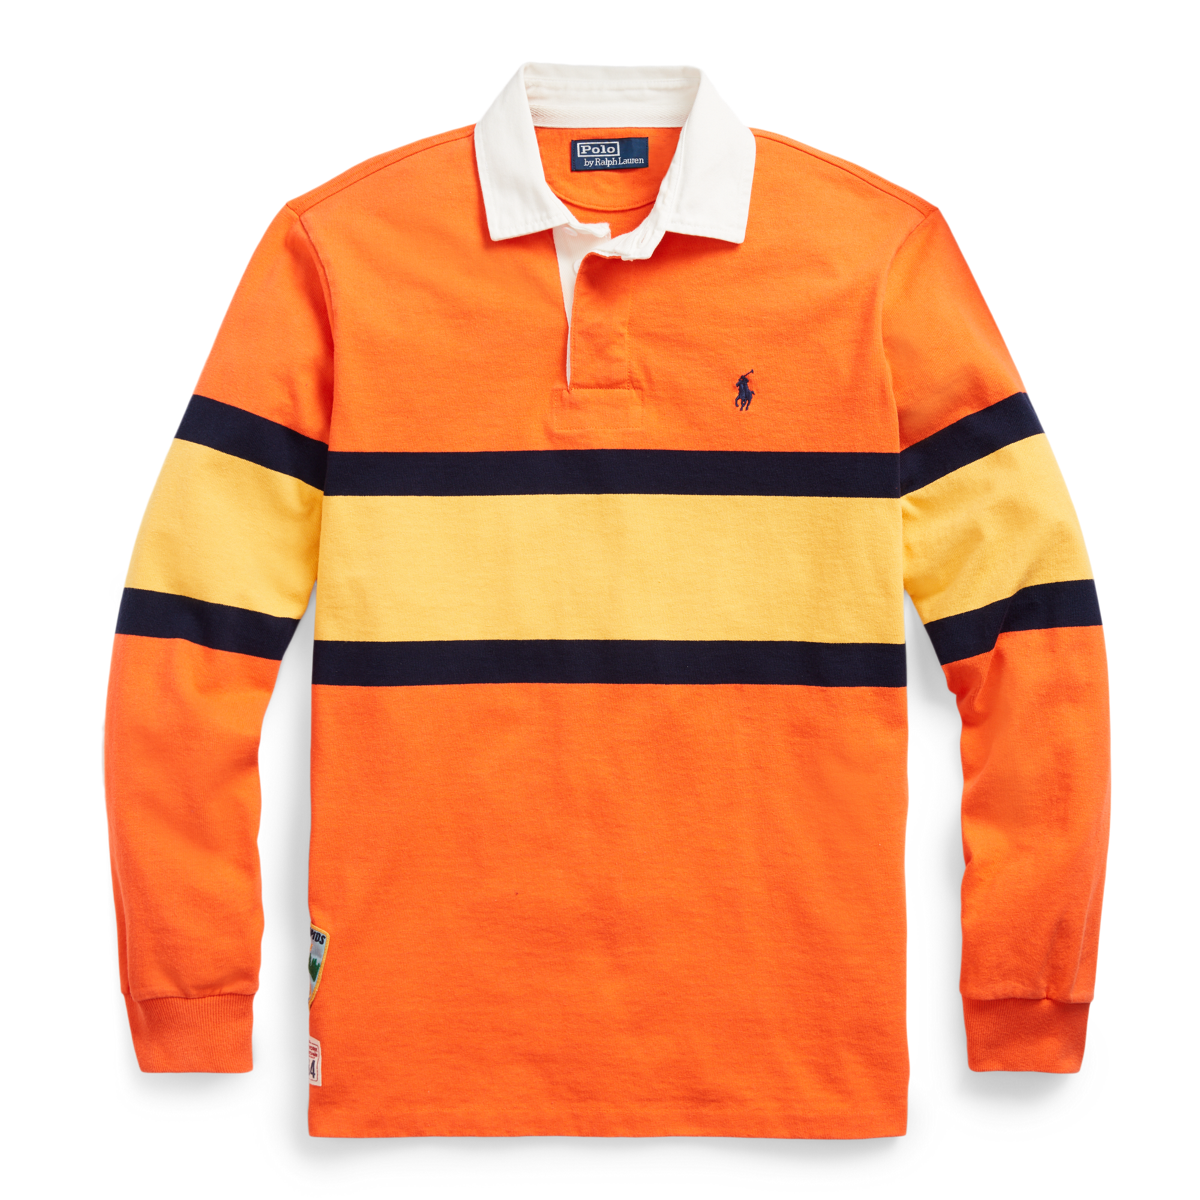 Classic Fit Rugby Shirt Mens Rugby Shirts Polo Ralph Lauren Outfits Ralph Lauren Rugby Shirt [ 1200 x 1200 Pixel ]